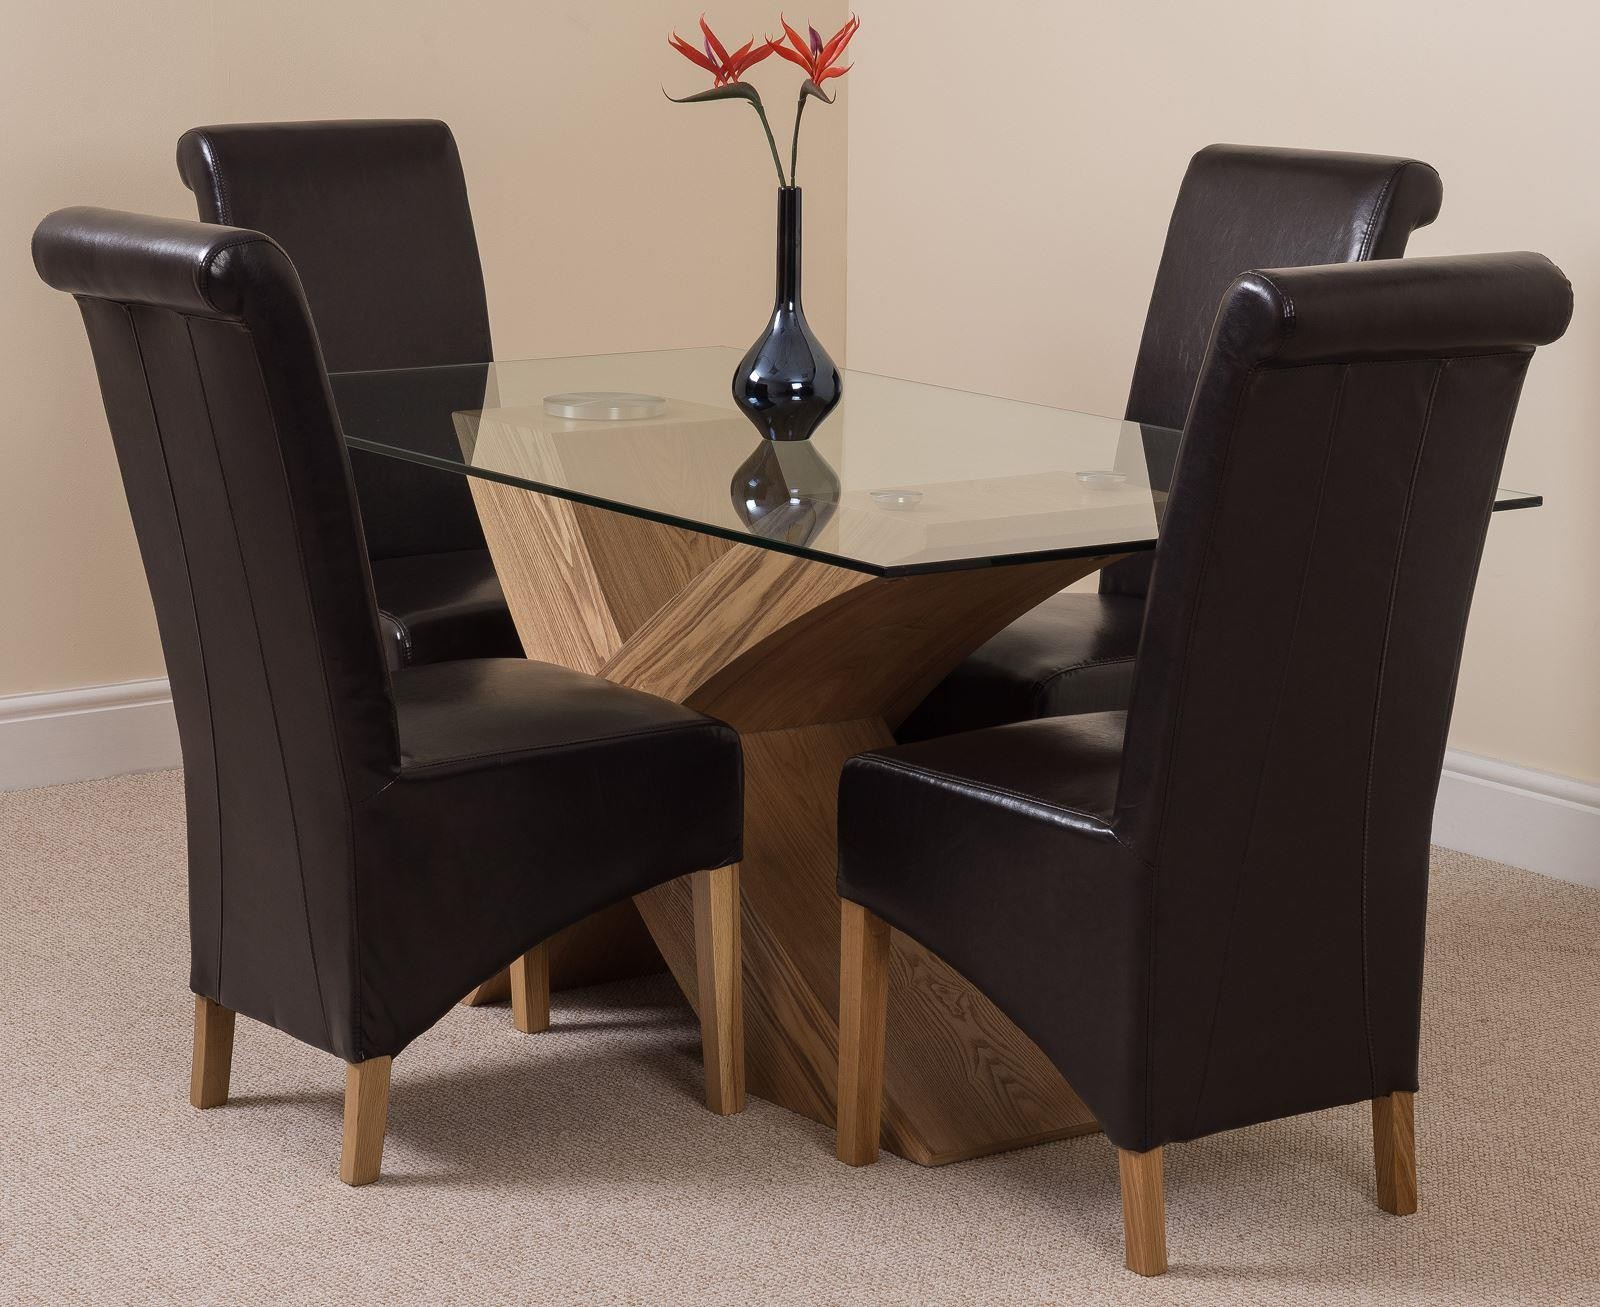 Valencia Oak 160cm Wood and Glass Dining Table with 4 Montana Dining Chairs [Brown Leather]